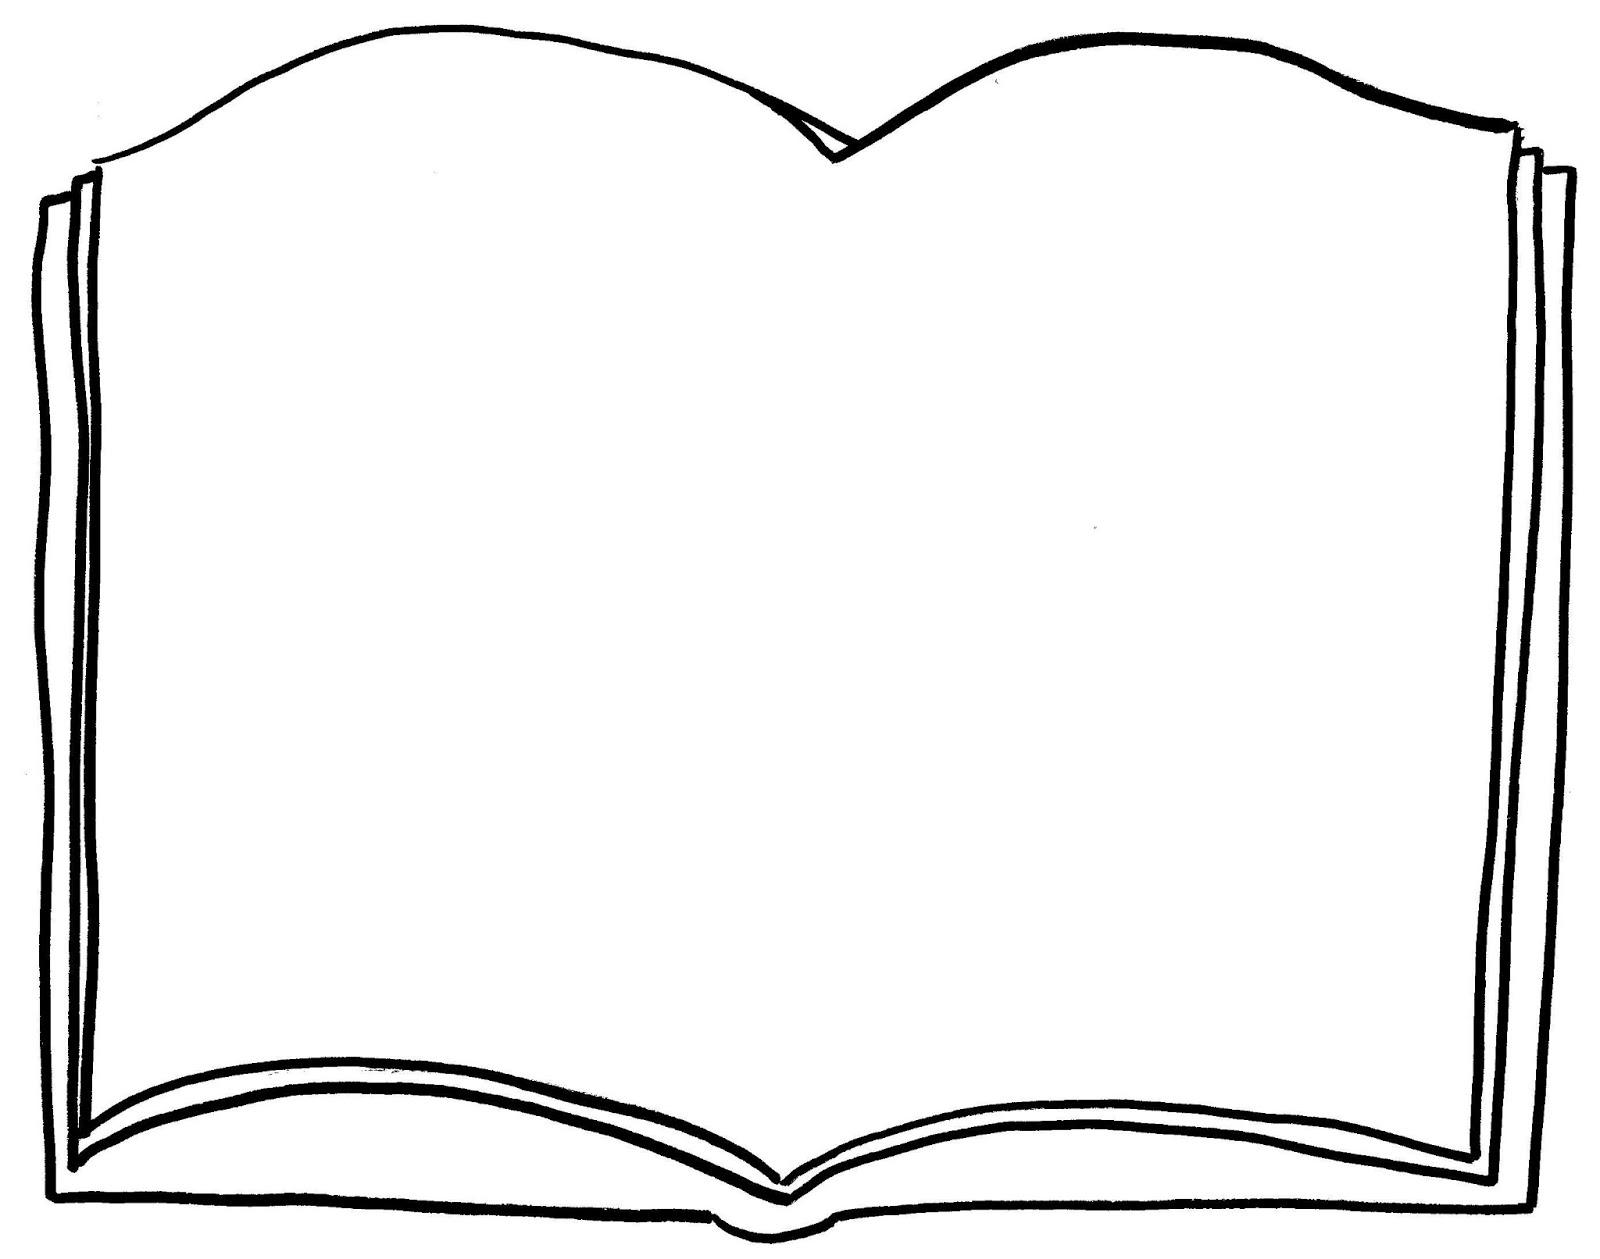 Childrens liturgy colouring pages - Childrens Liturgy Coloring Pages Use This Graphic To Make The Full Size Coloring Page To